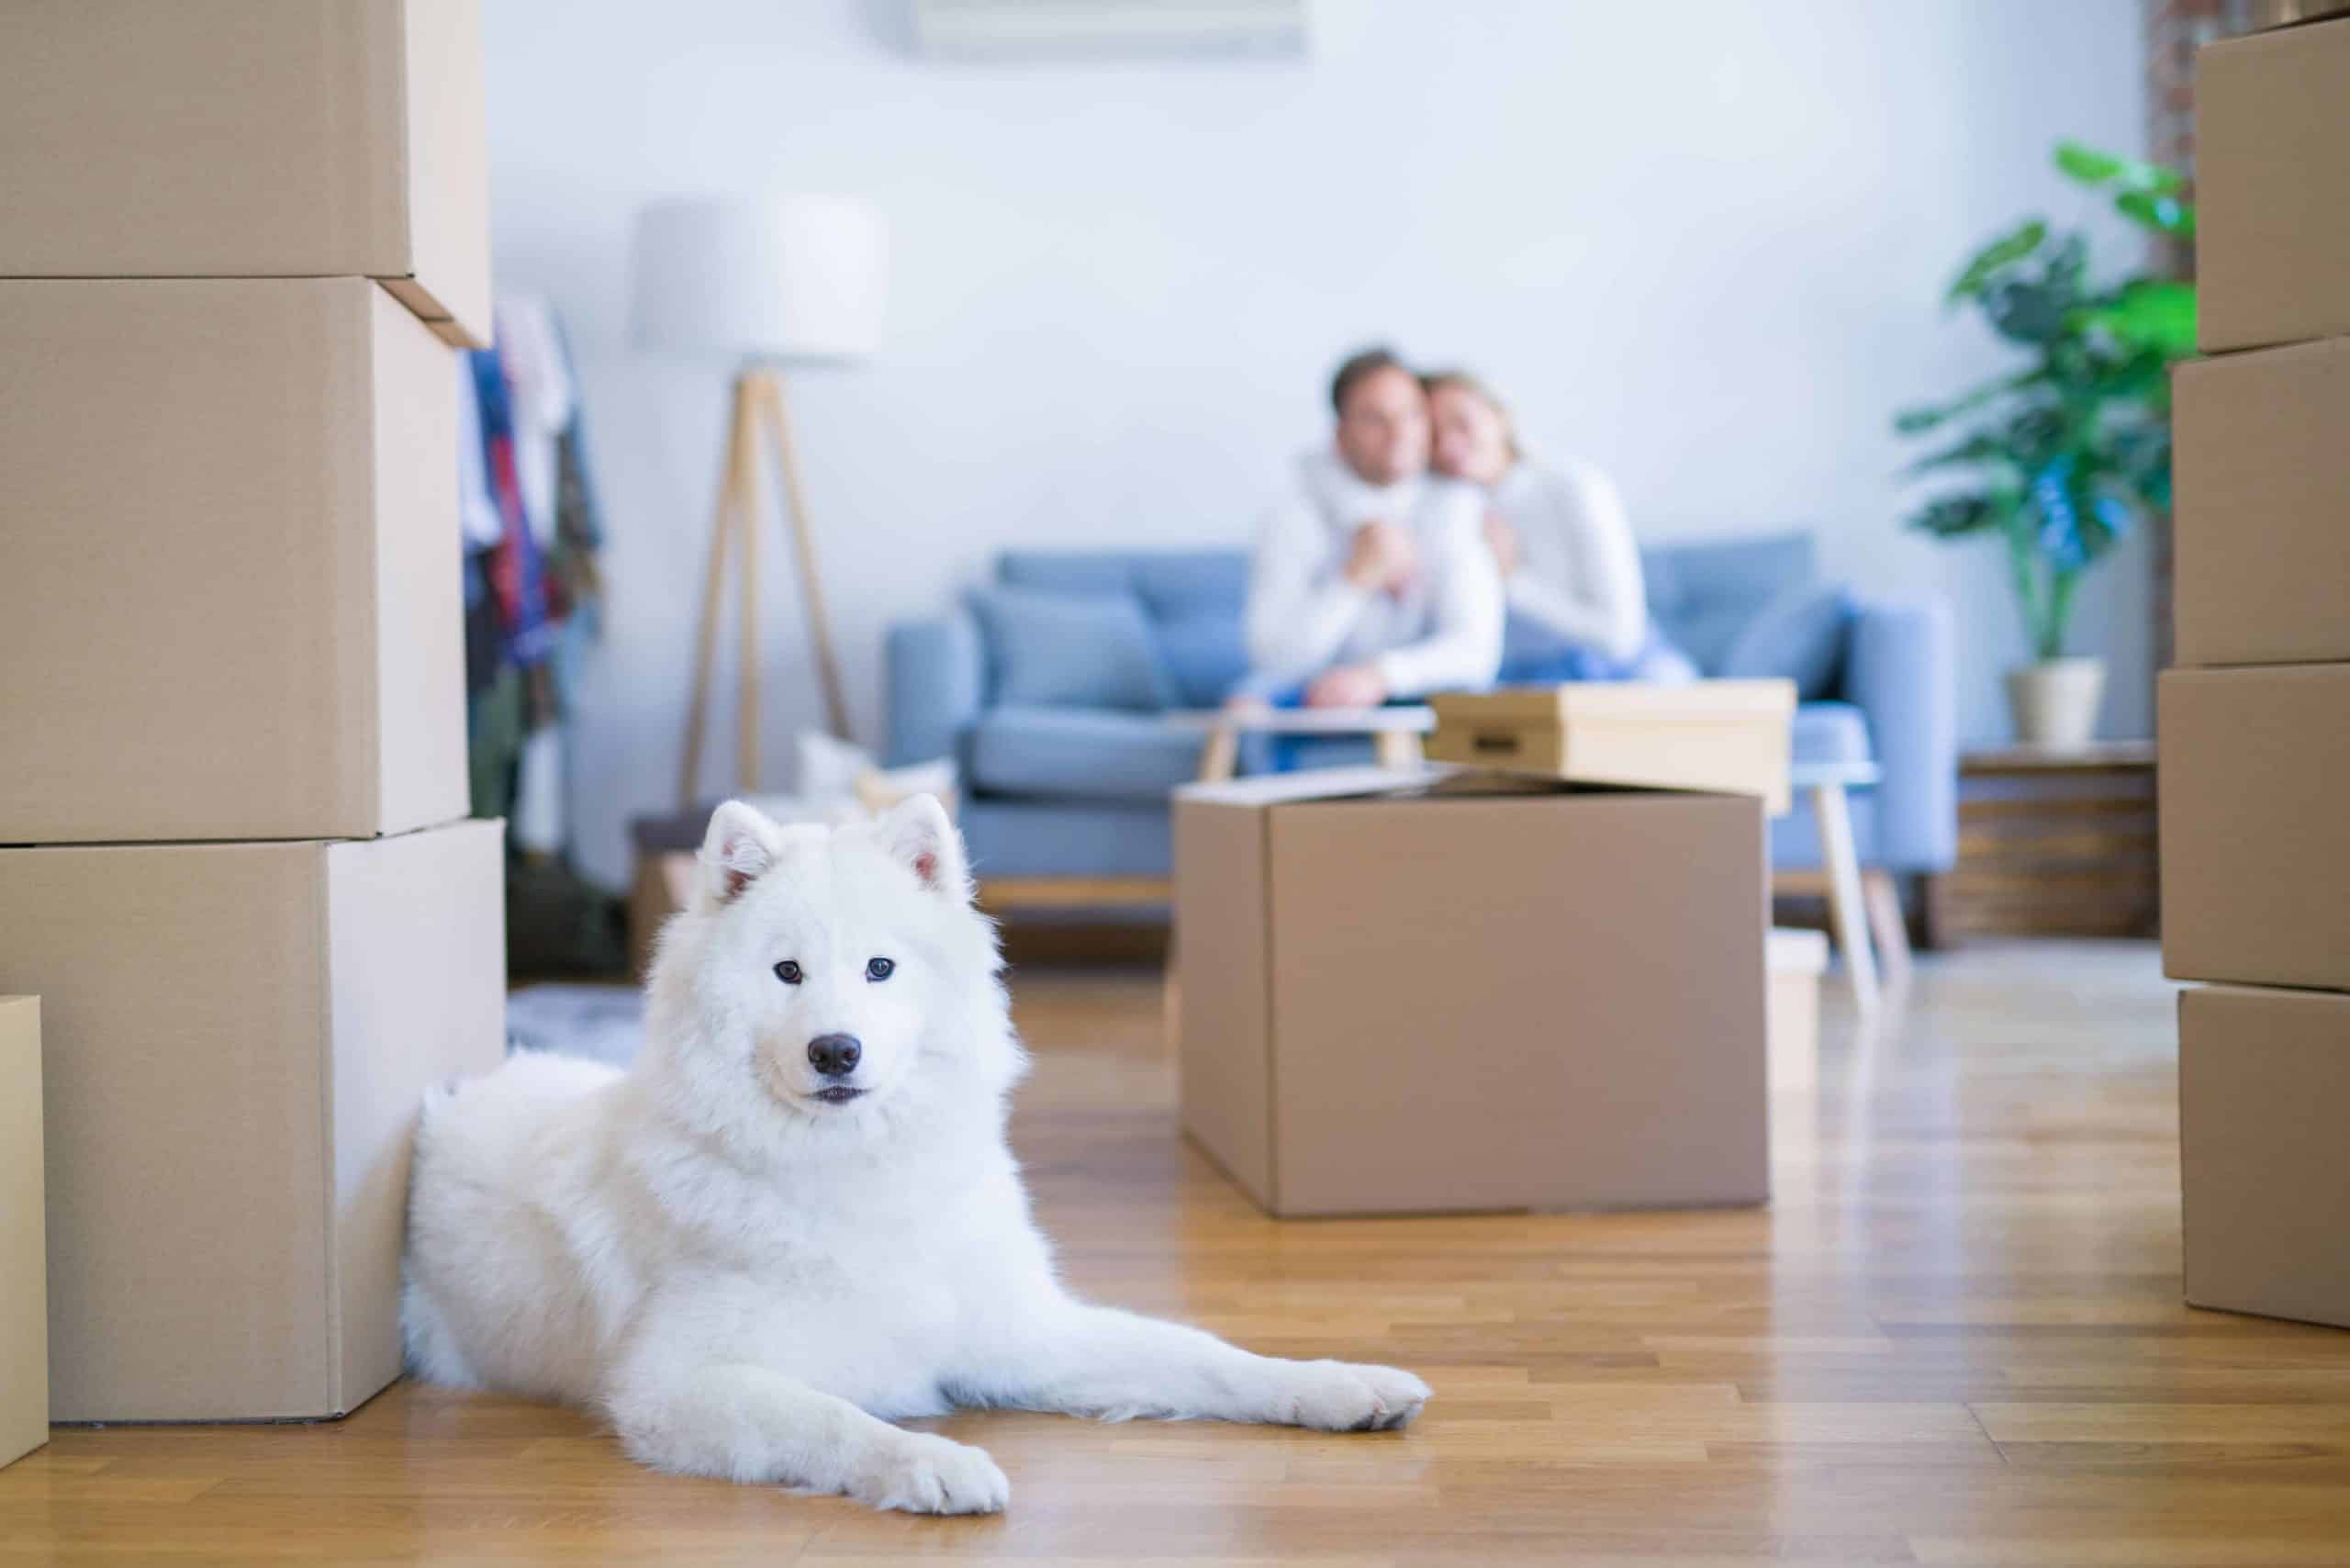 Samoyed sits in front of moving boxes while owners sit on couch. Help a stressed dog cope with moving anxiety by reducing disruptions as much as possible. Try to maintain your dog's routine to help it cope.